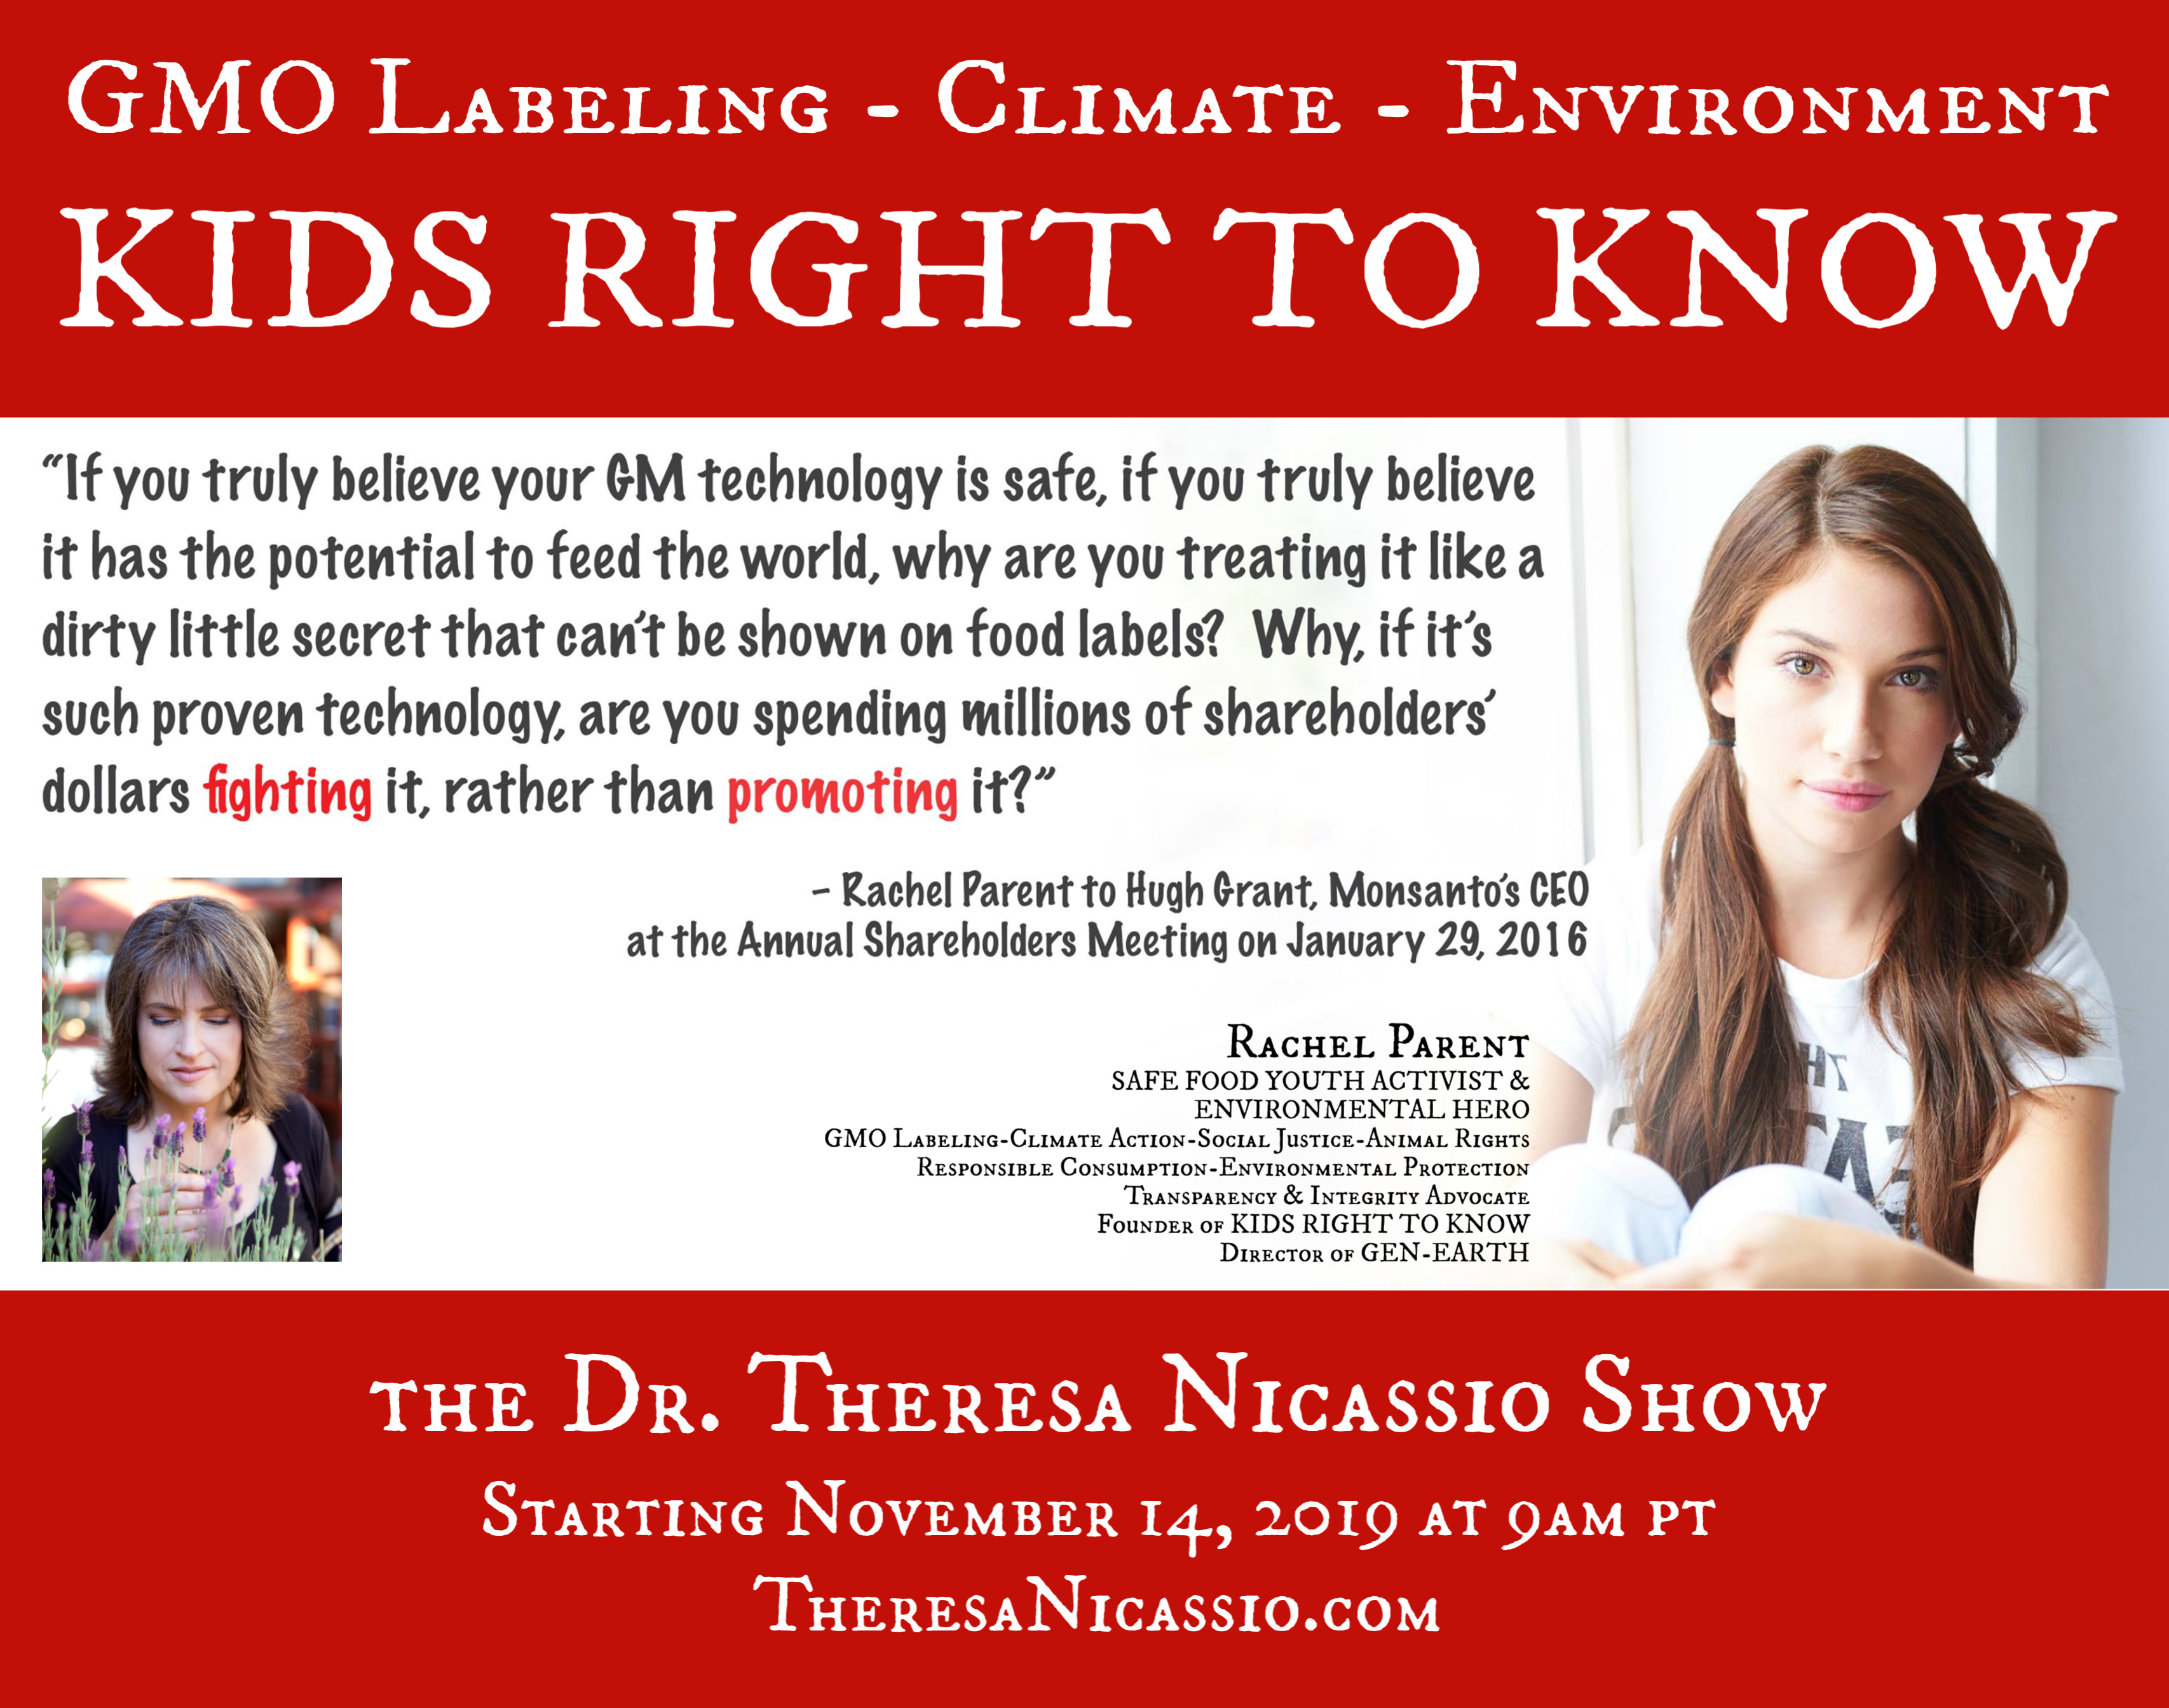 Rachel Parent SAFE FOOD YOUTH ACTIVIST, GMO Labeling Advocate, and ENVIRONMENTAL HERO on The Dr. Theresa Nicassio Show on Healthy Life Radio.